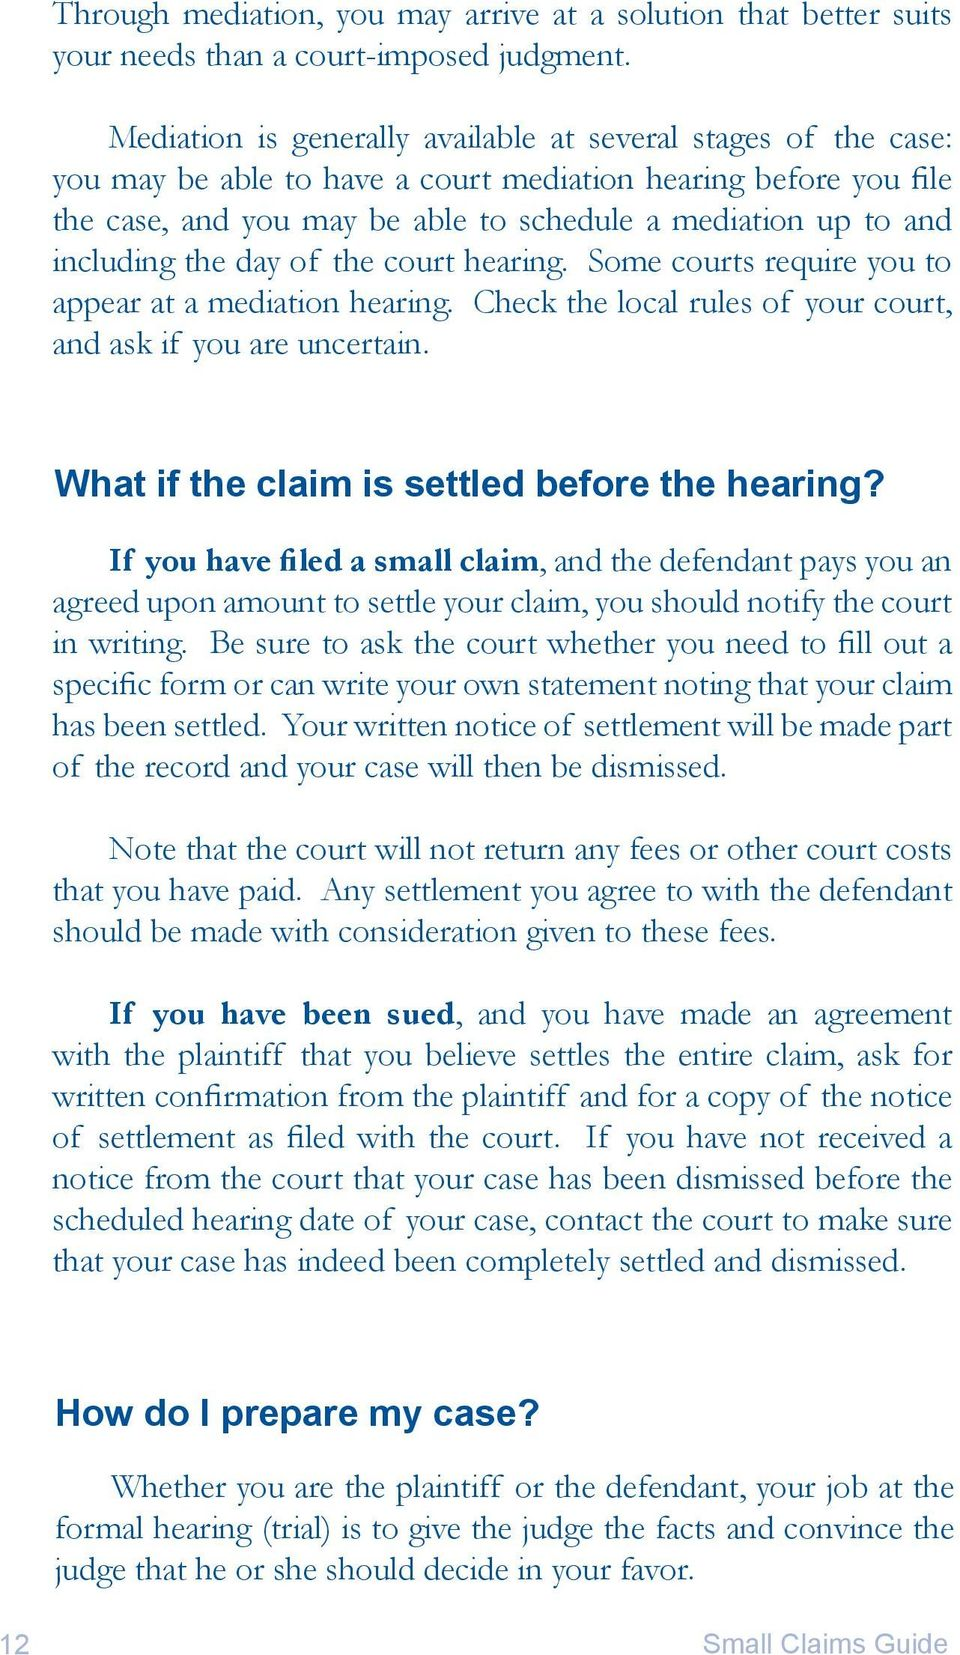 including the day of the court hearing. Some courts require you to appear at a mediation hearing. Check the local rules of your court, and ask if you are uncertain.